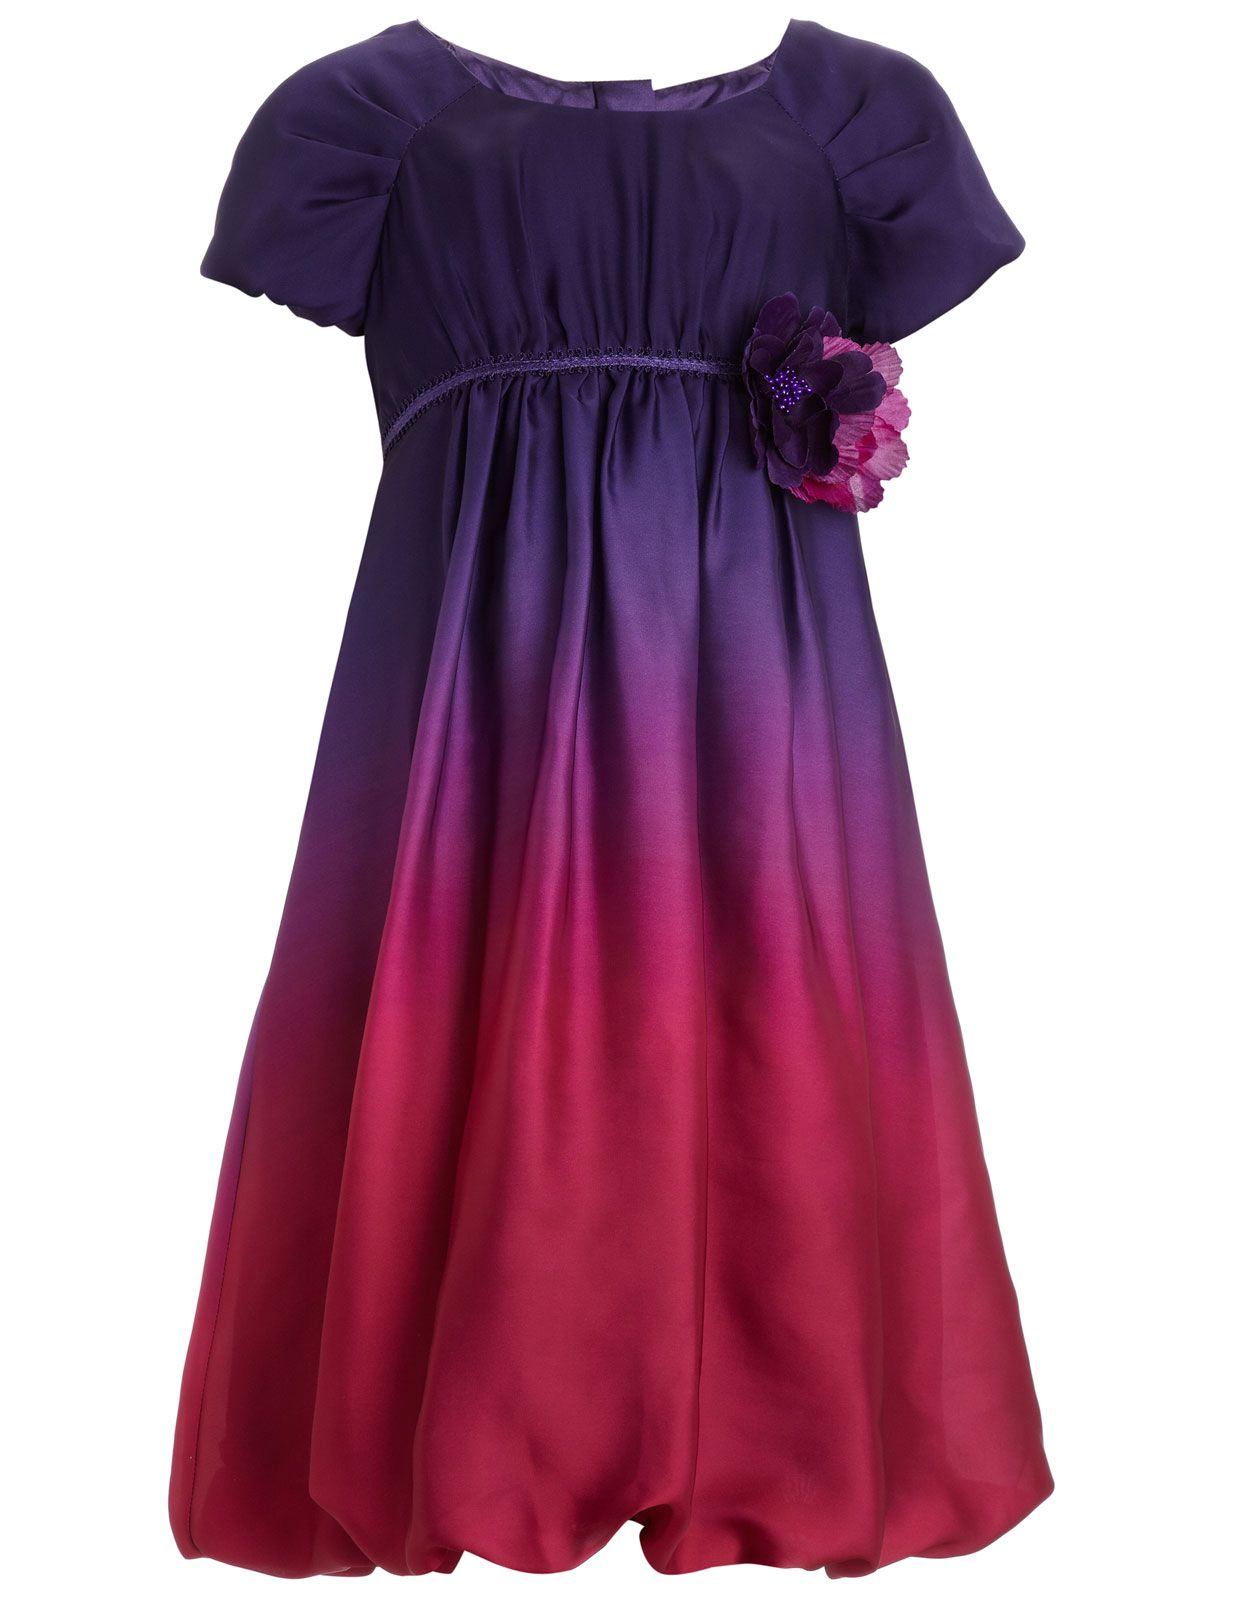 flower girl dress | kids | Pinterest | Monsoon, Purple wedding and ...